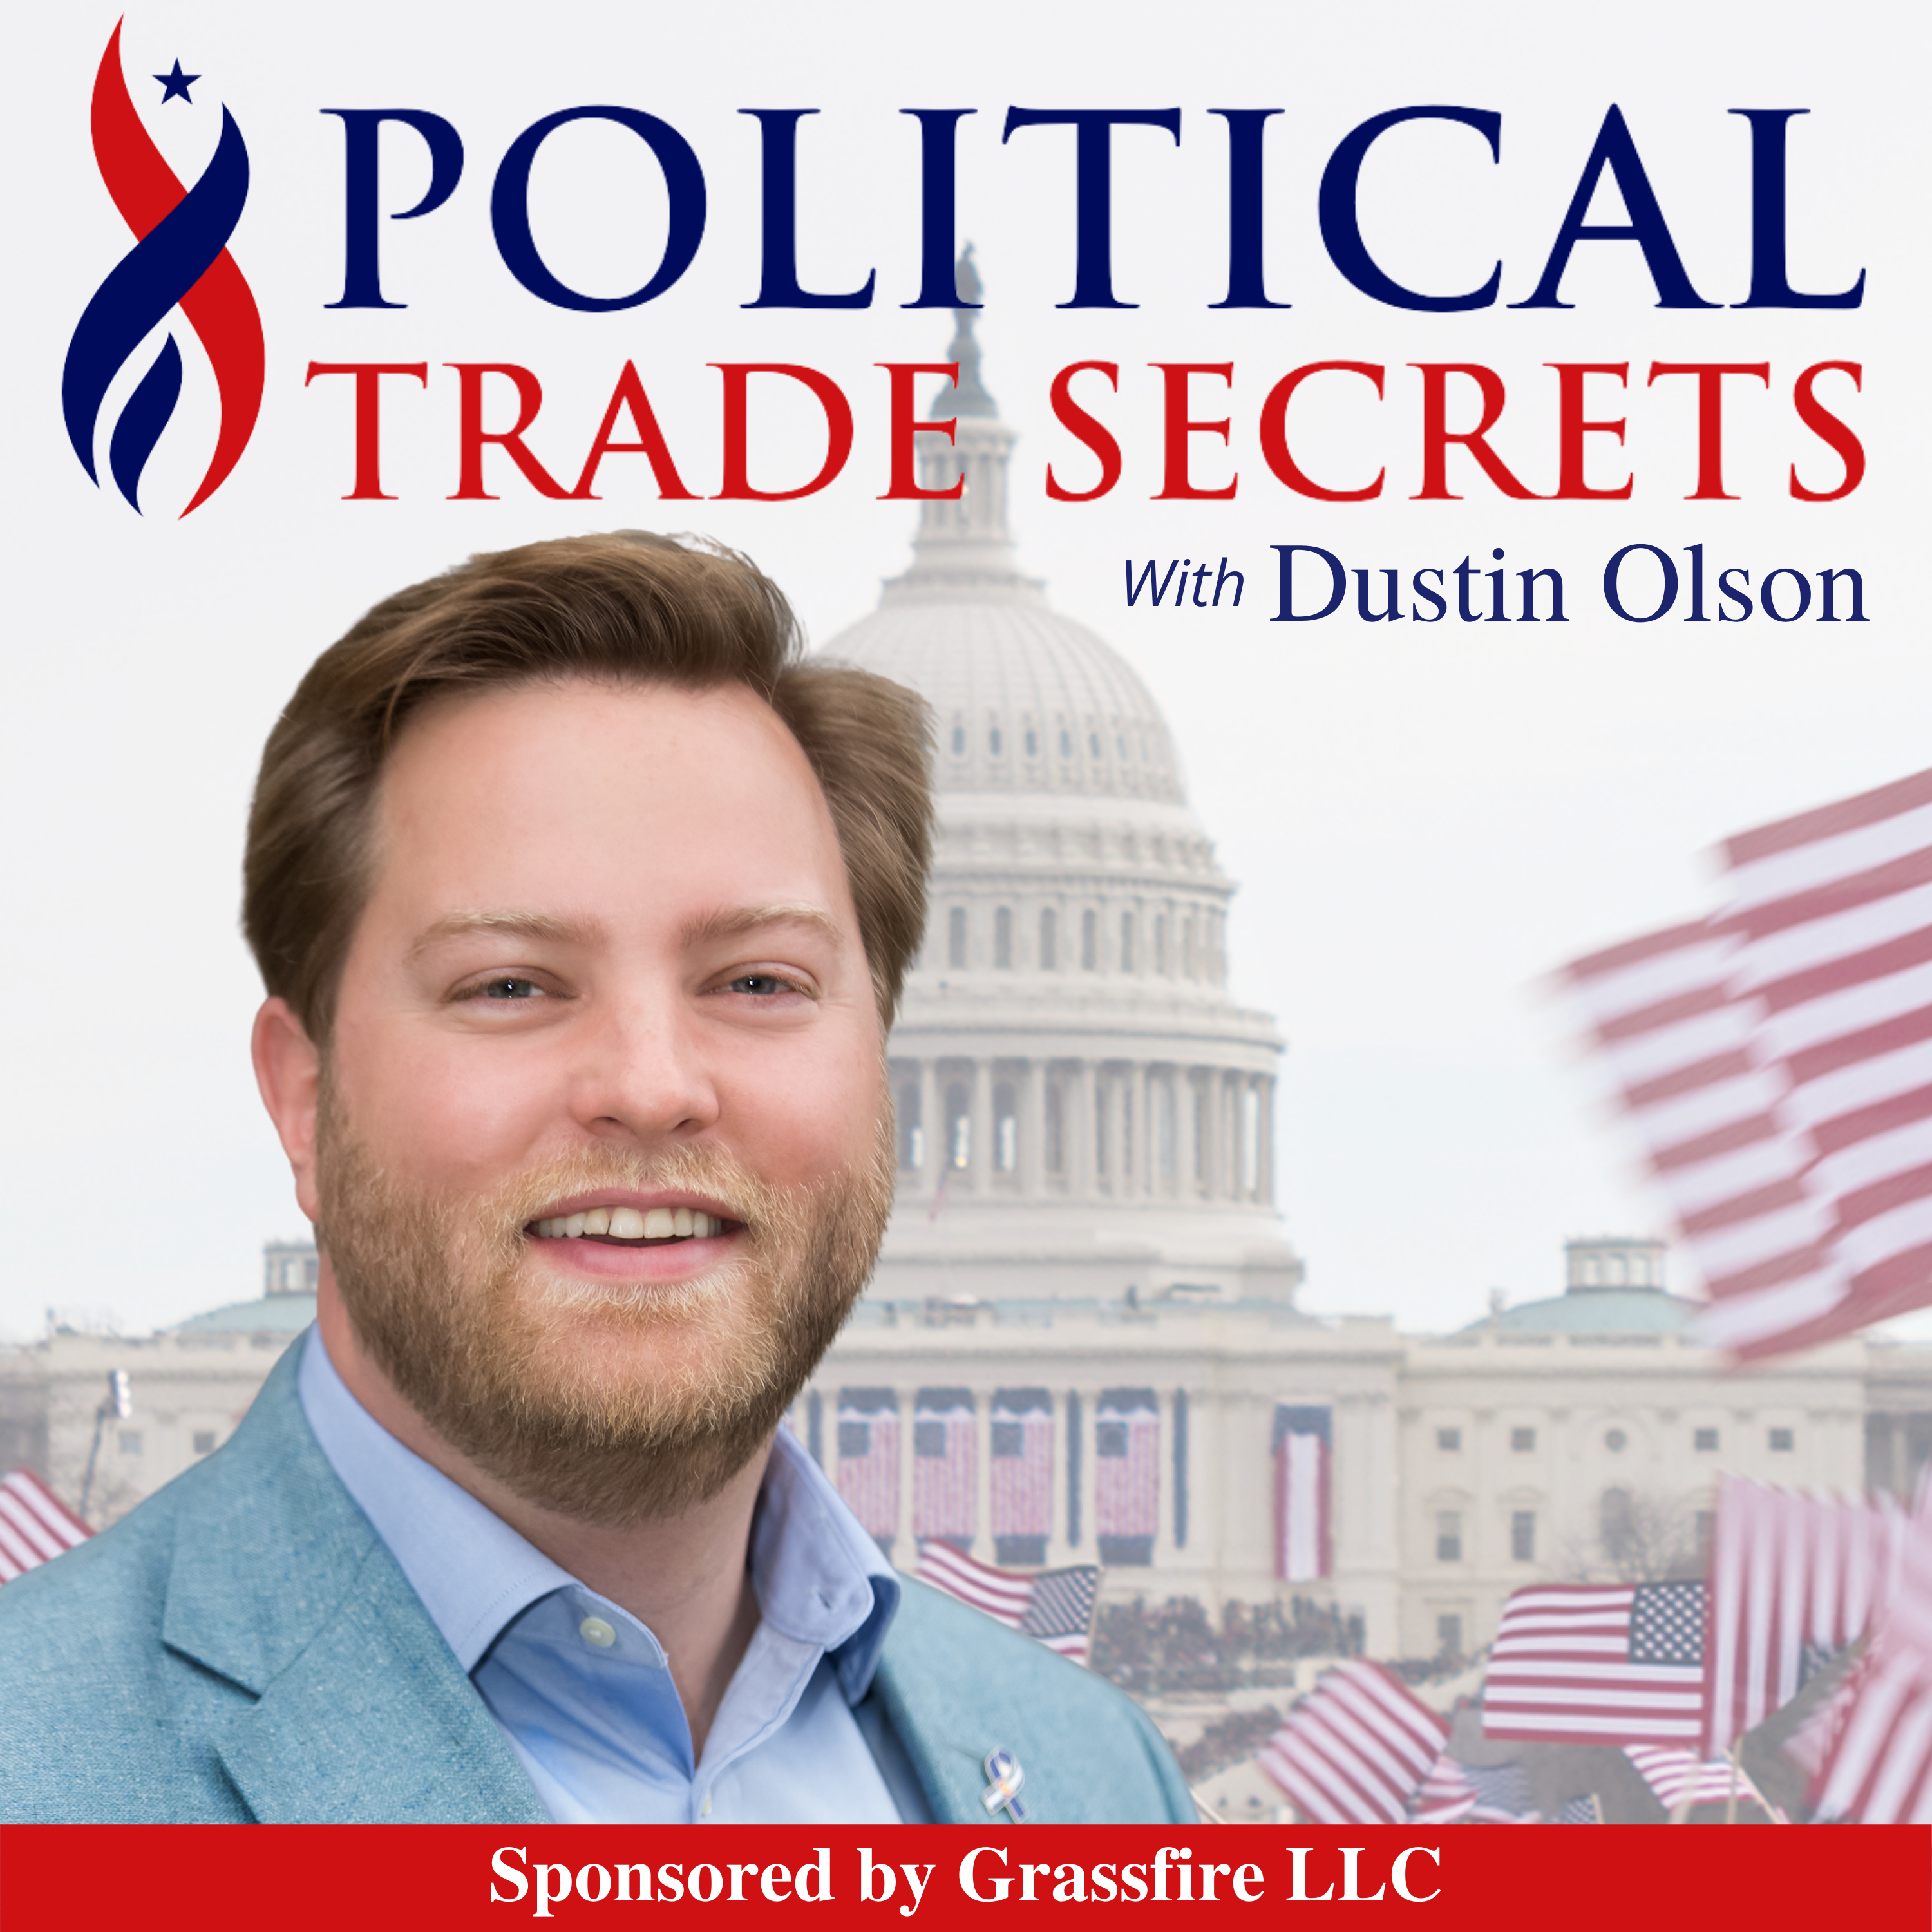 Political Trade Secrets: THE POSSIBILITY PRESIDENT: How Donald Trump Sees Possibilities Where Others Only See Constraints | Preview POTUS Debate 2